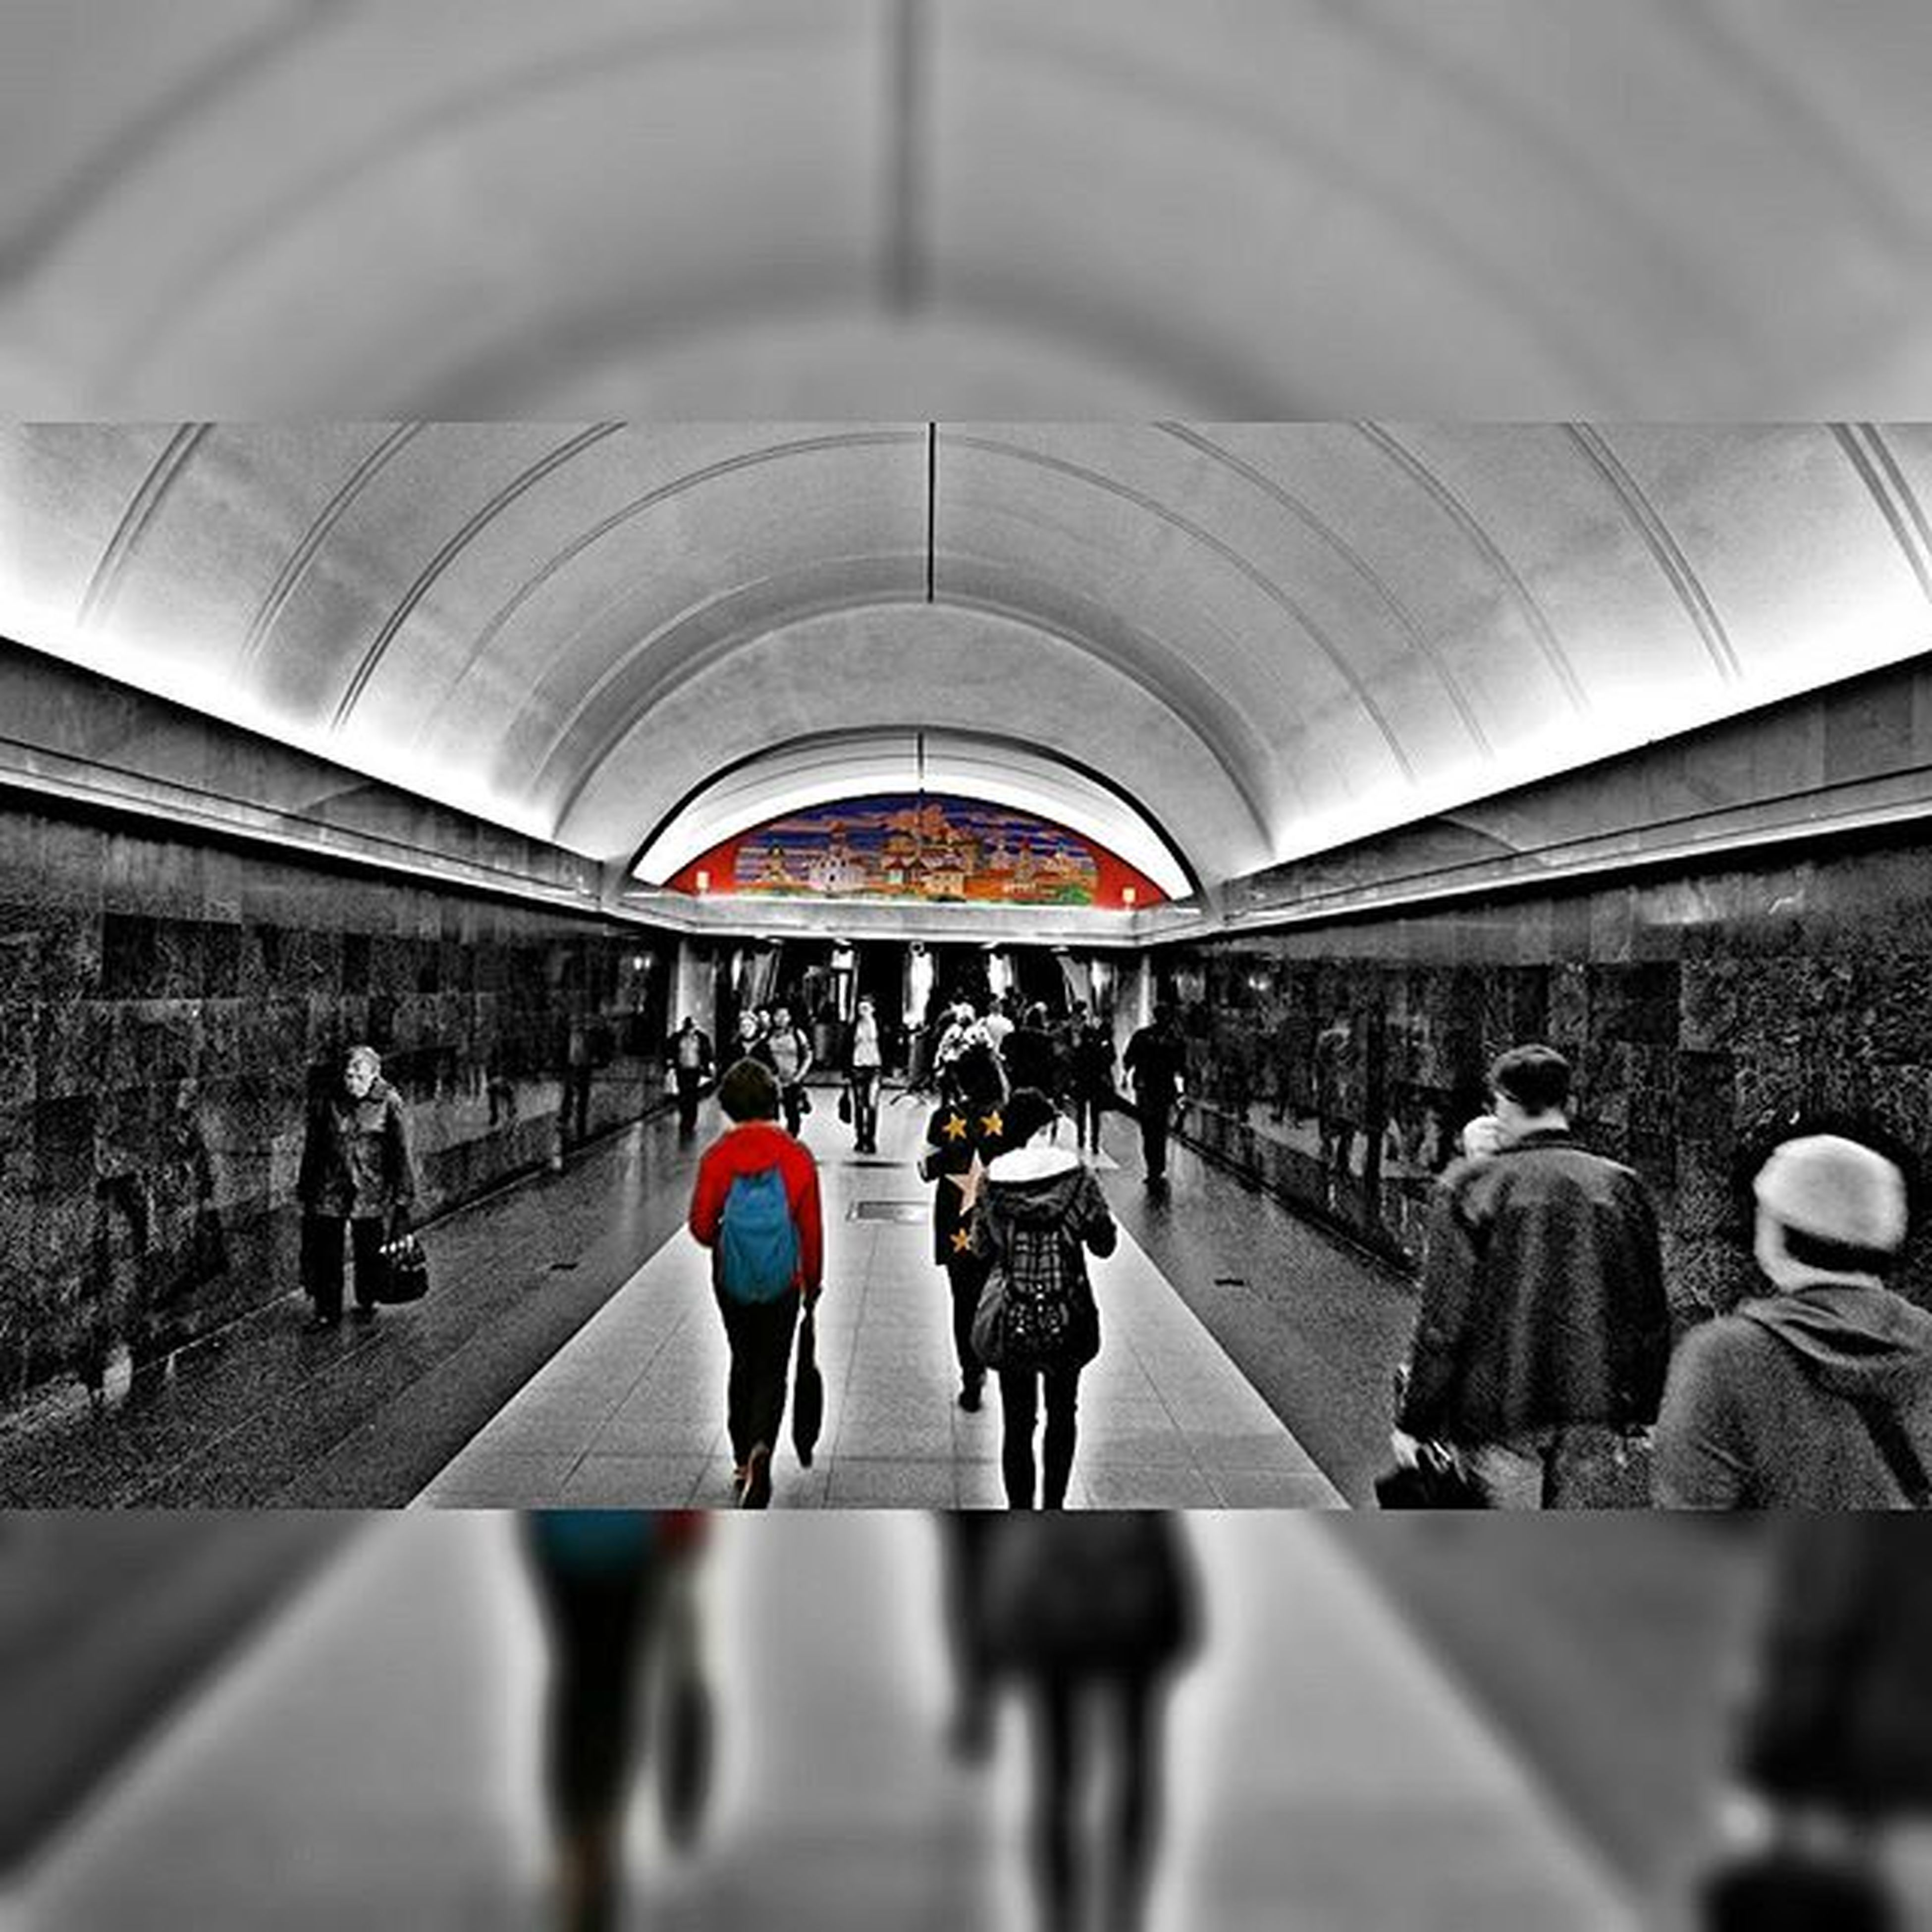 large group of people, men, indoors, architecture, person, built structure, walking, lifestyles, city life, railroad station, ceiling, leisure activity, travel, arch, public transportation, mixed age range, transportation, city, subway station